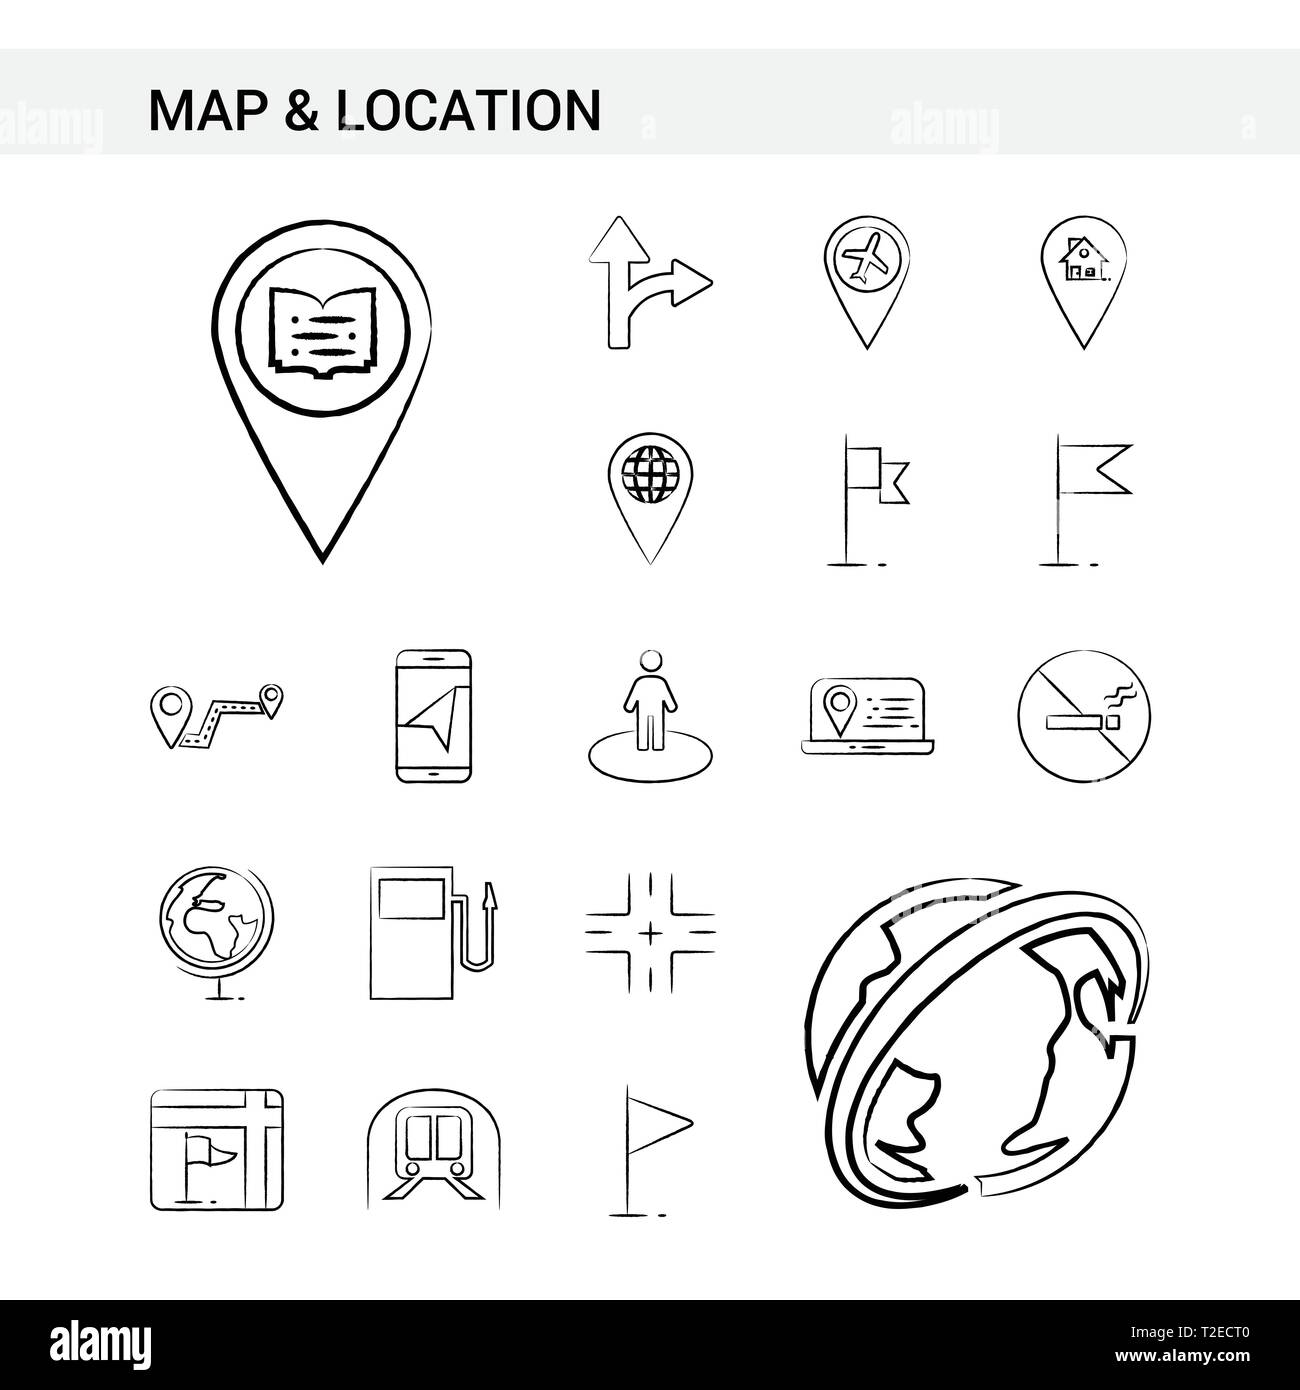 Map and Location hand drawn Icon set style, isolated on